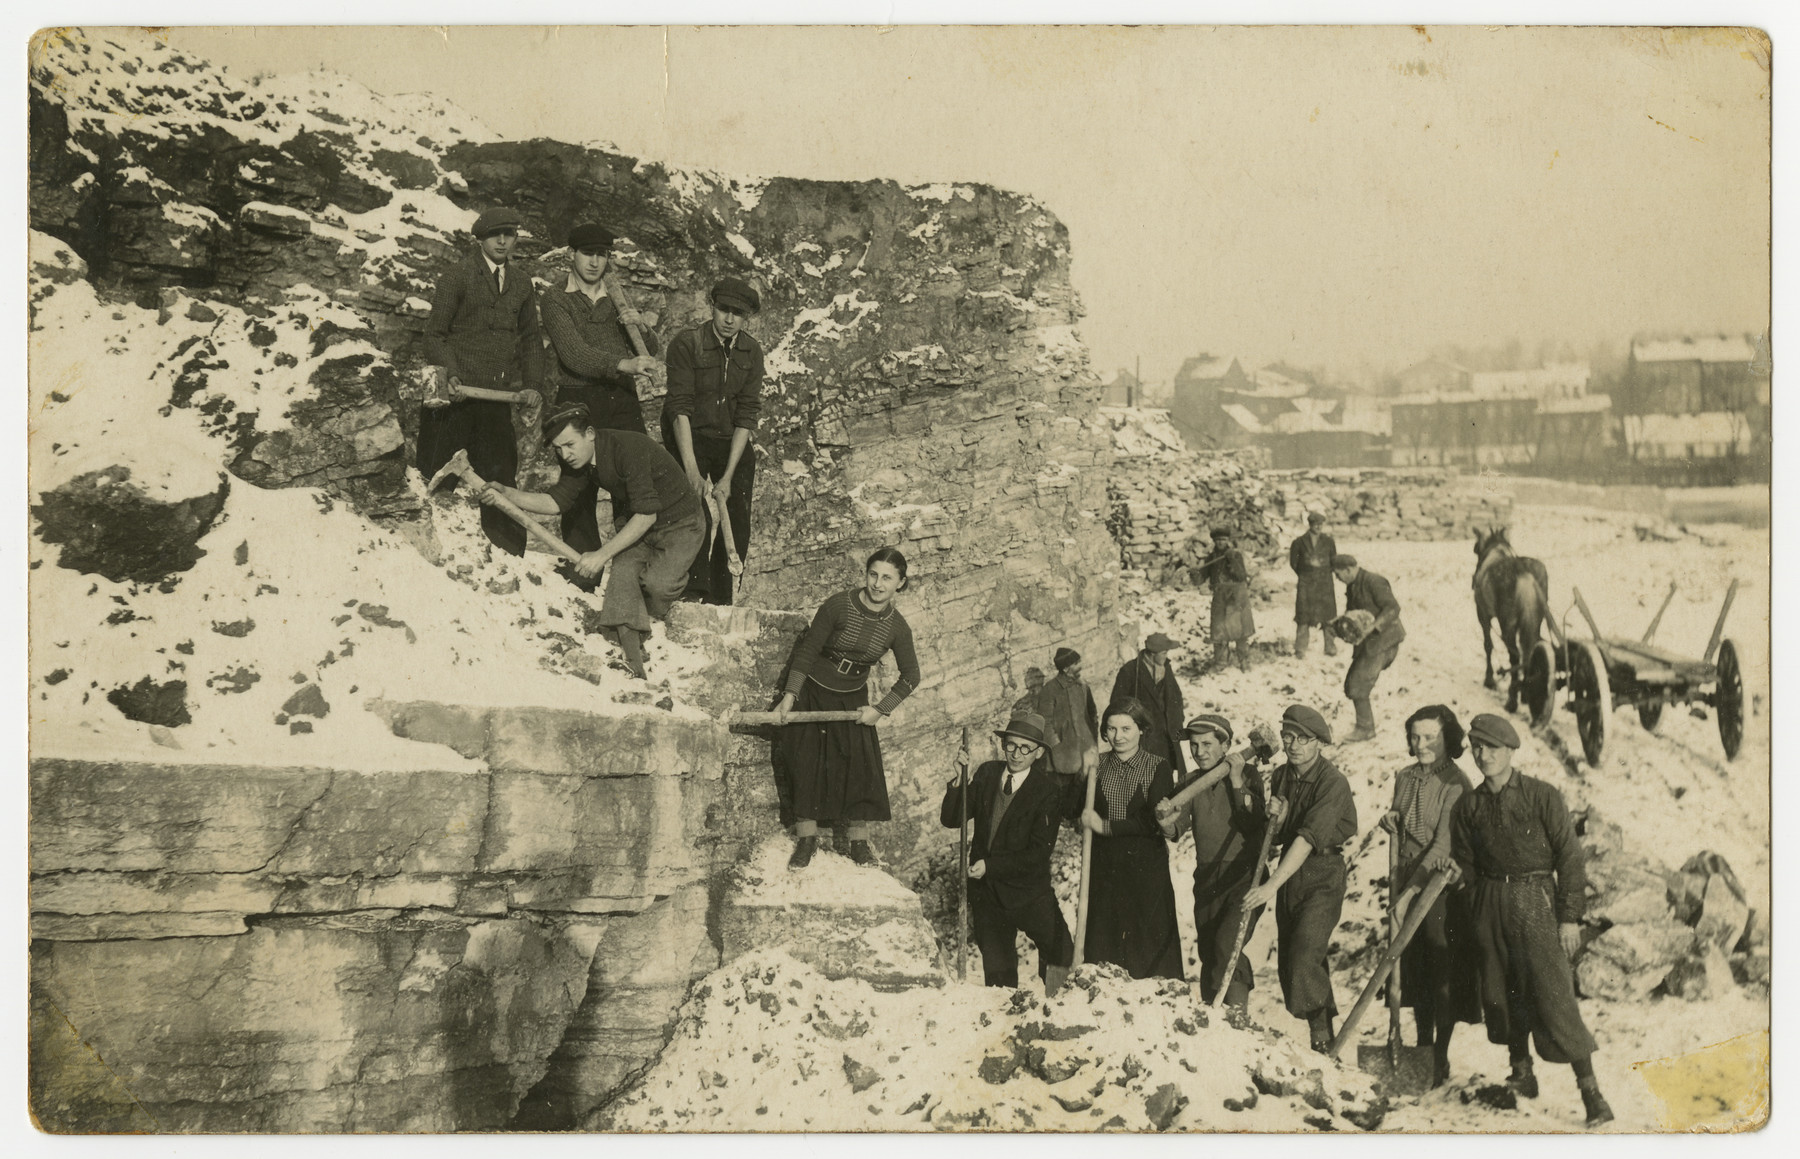 Asher Fetherhar (later Zidon) poses with members of the Hechalutz Mizrachi hachshara in Czeladz while working in a quarry.